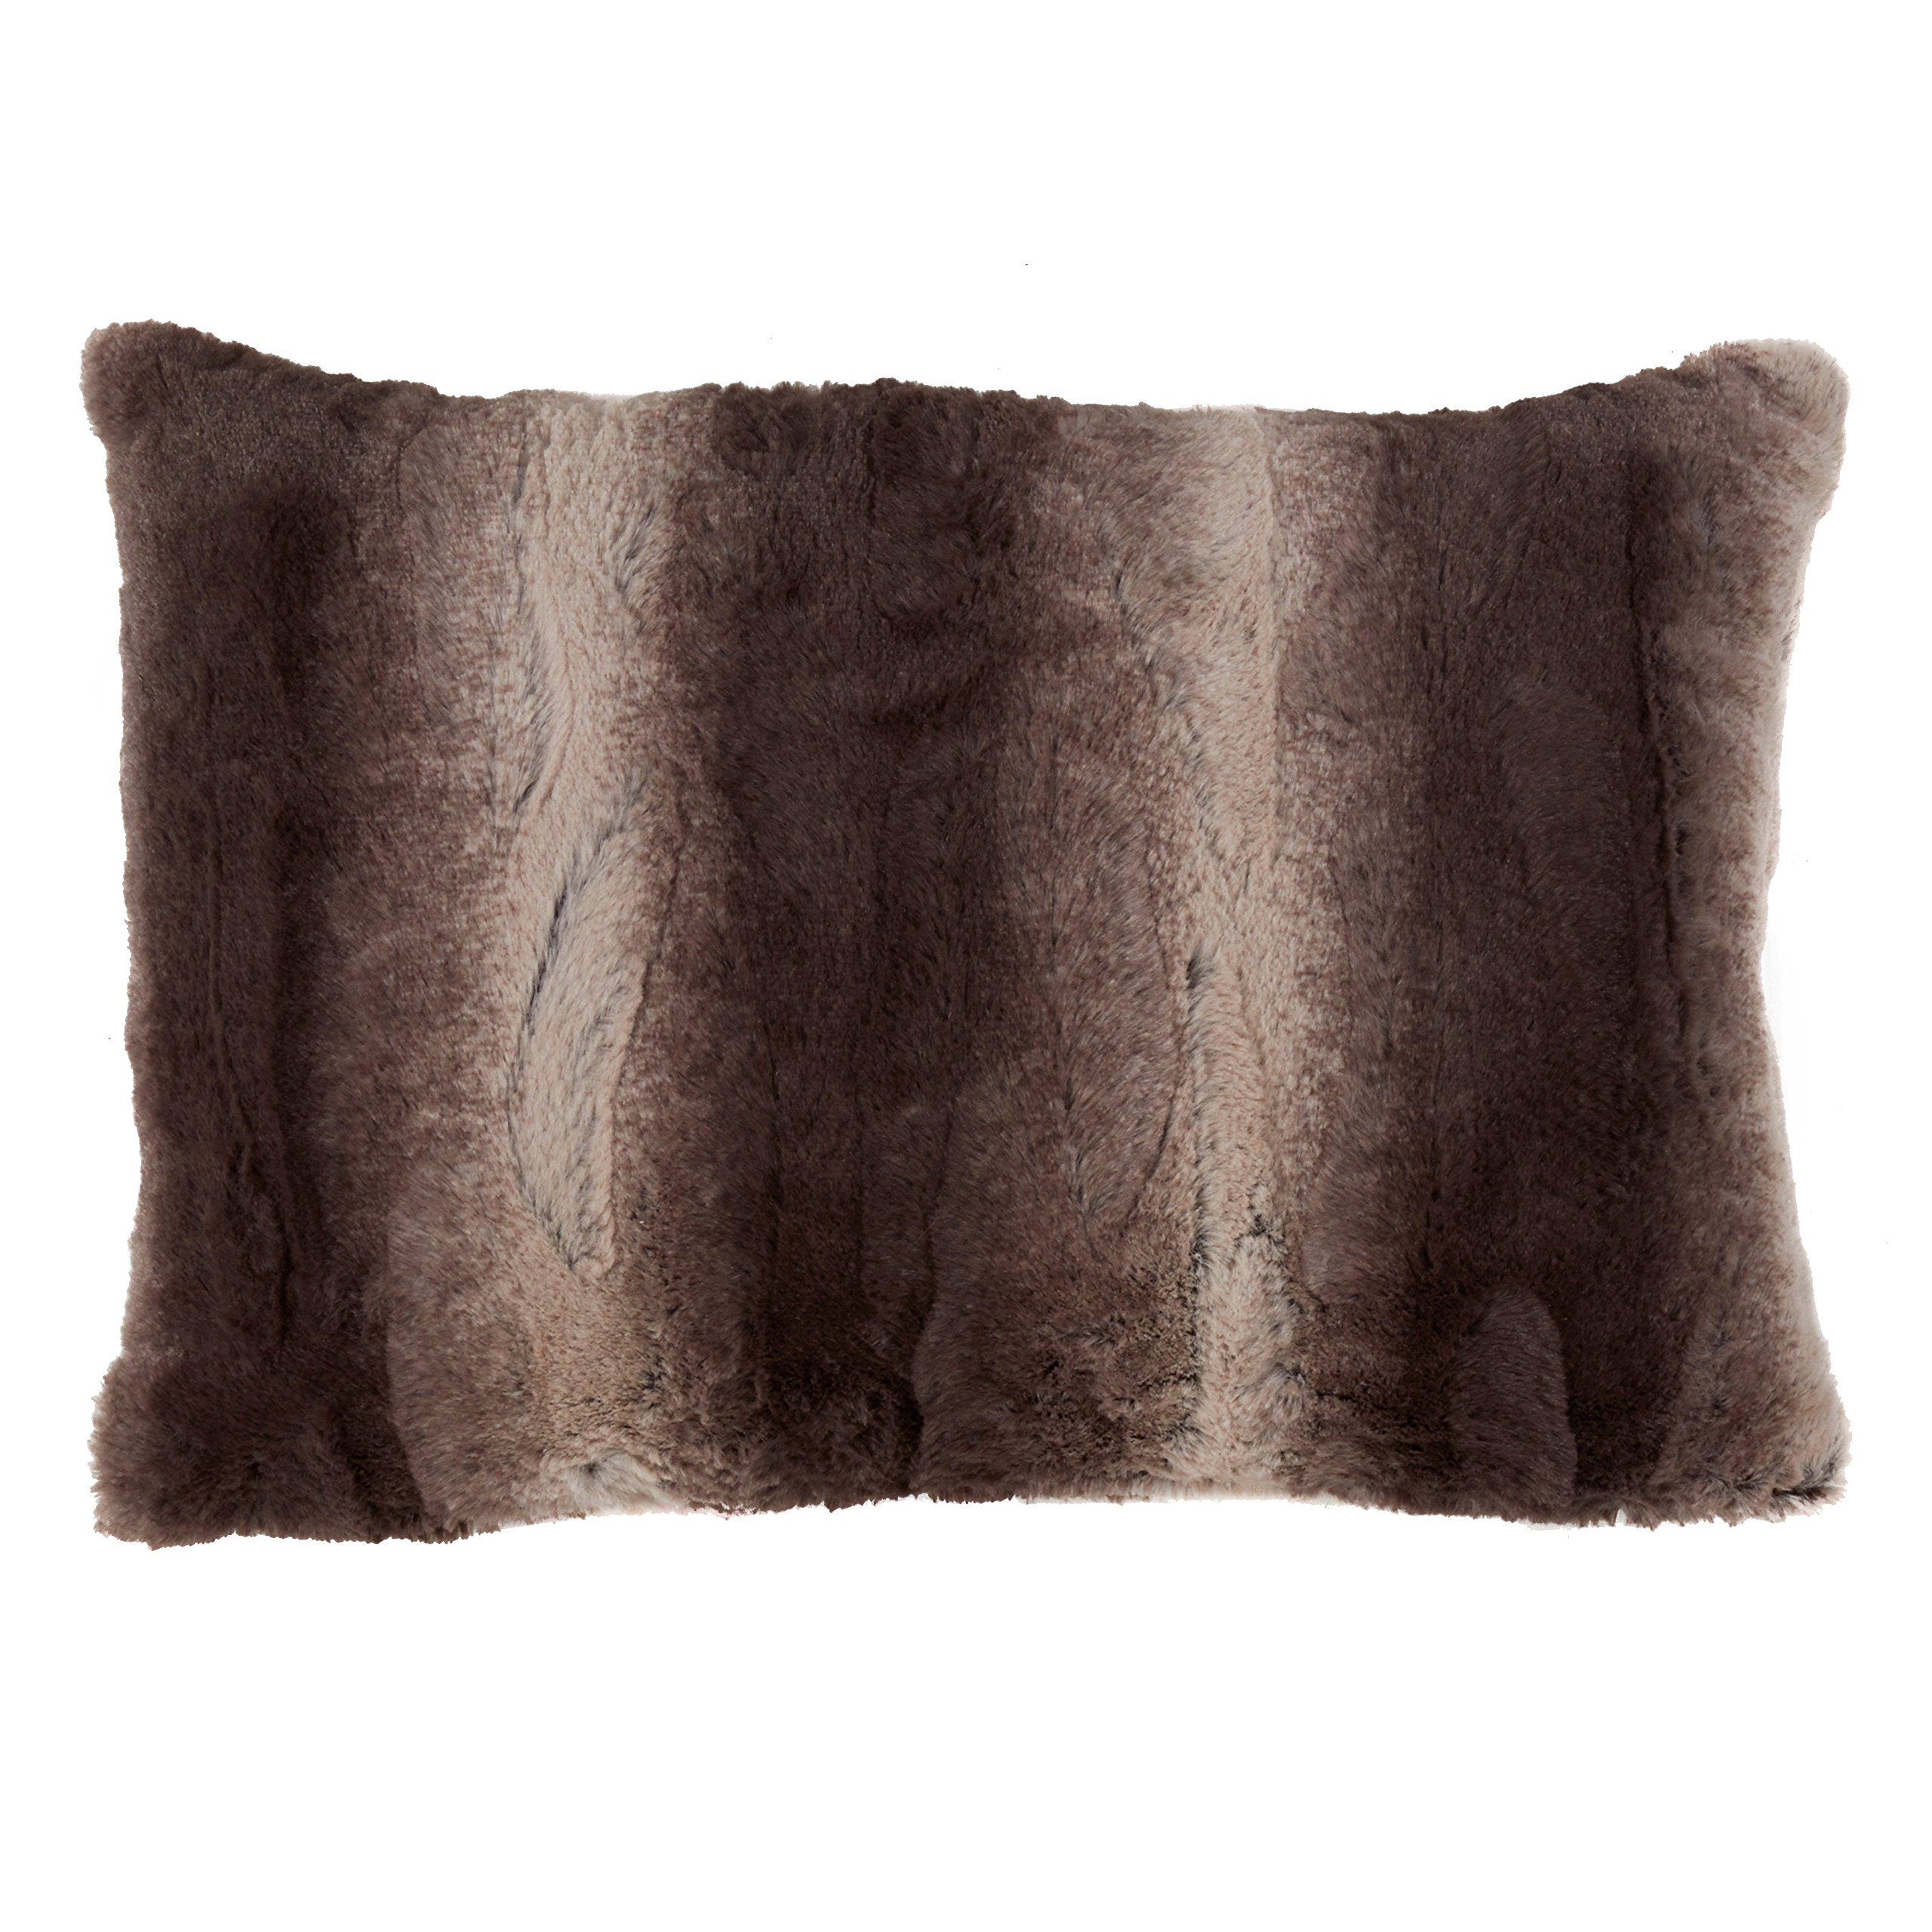 SARO LIFESTYLE Wilma Collection Timeless Animal Print Faux Fur Poly Filled Throw Pillow, 14'' x 20'', Chocolate